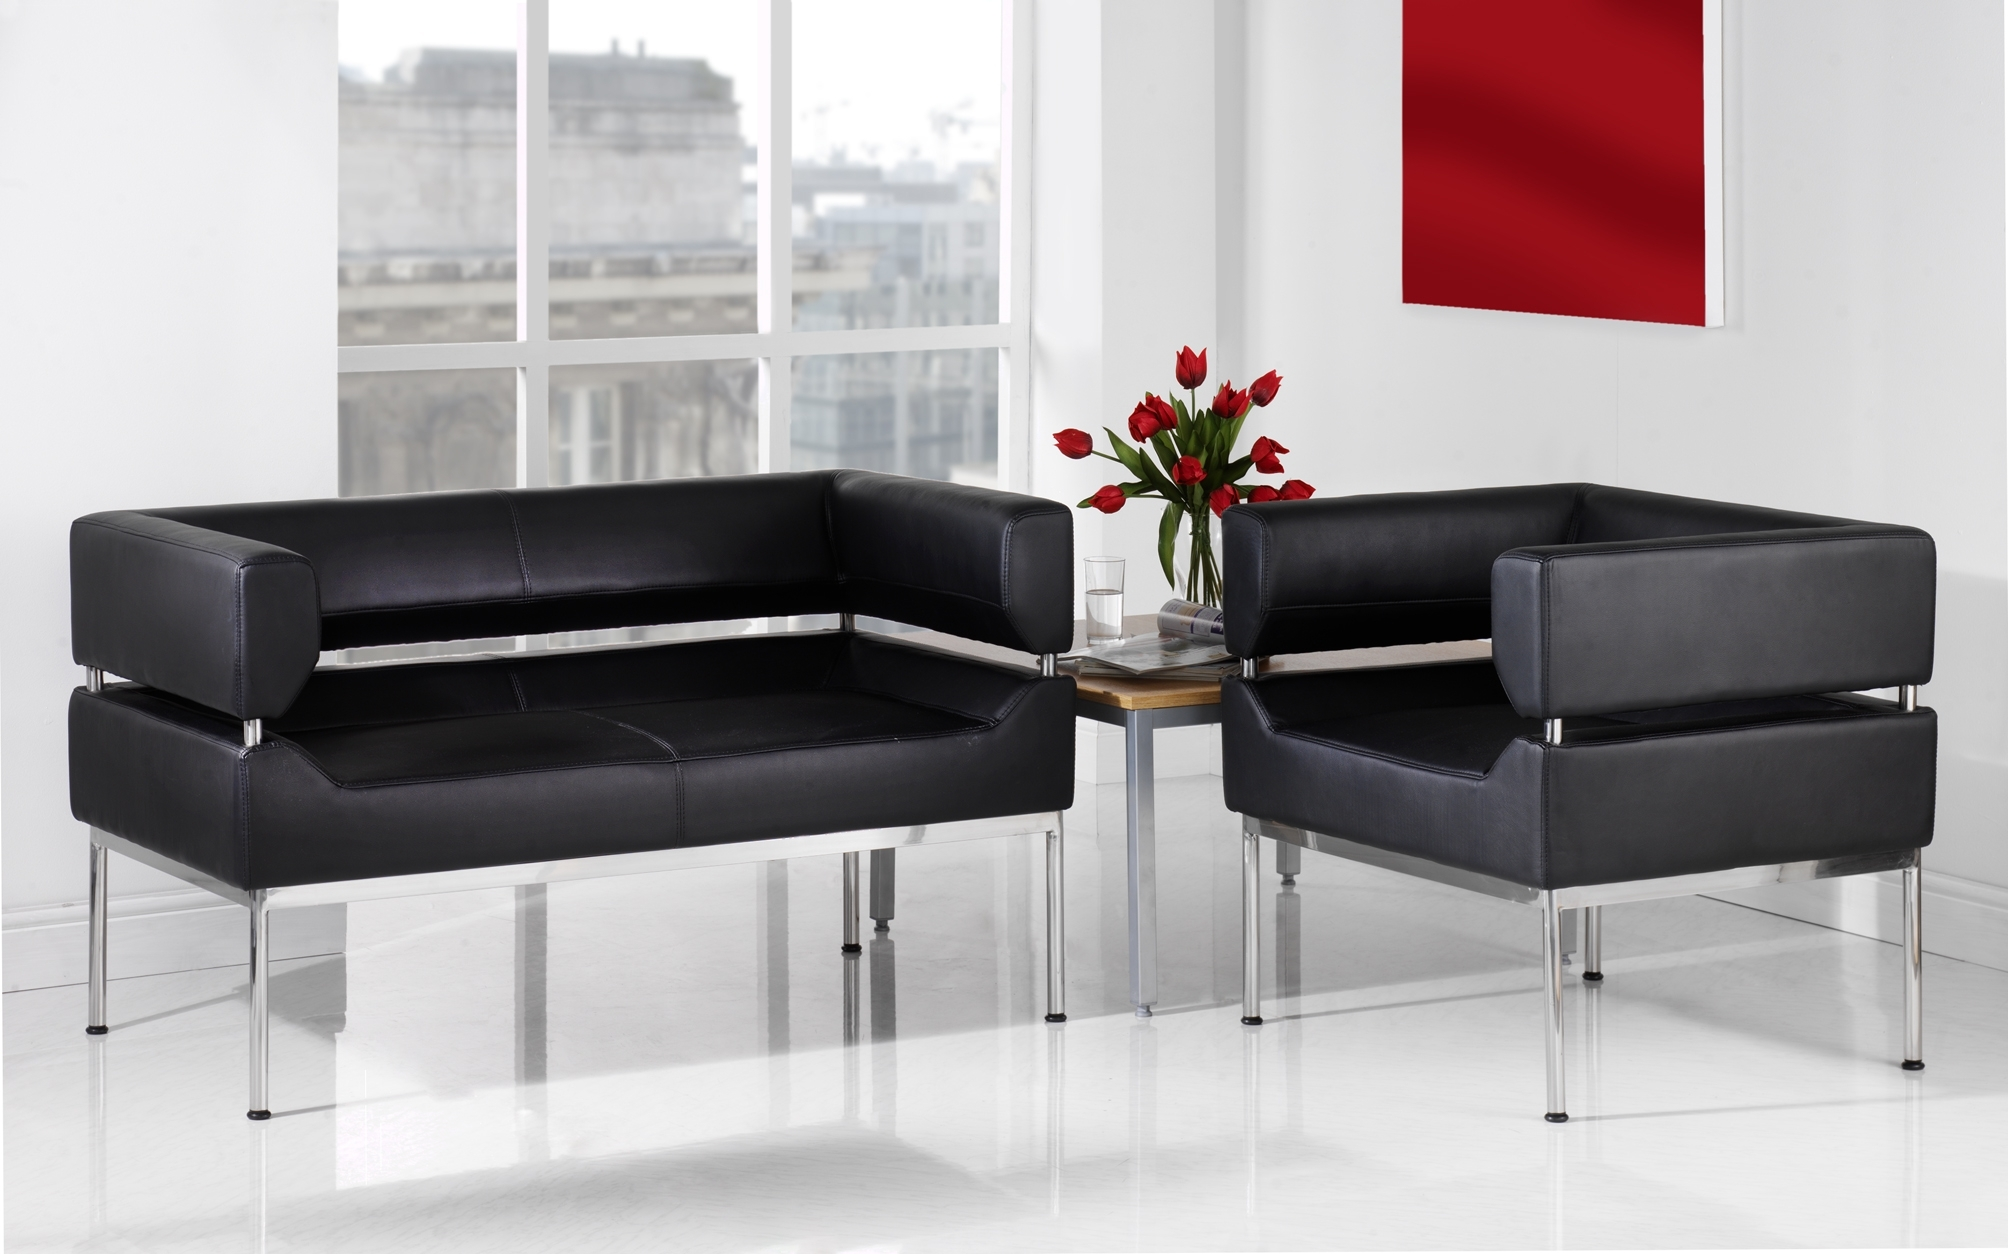 Most Recently Released Beautiful Sofas And Chairs 97 On Office Sofa Ideas With Sofas And Within Office Sofas And Chairs (View 10 of 15)